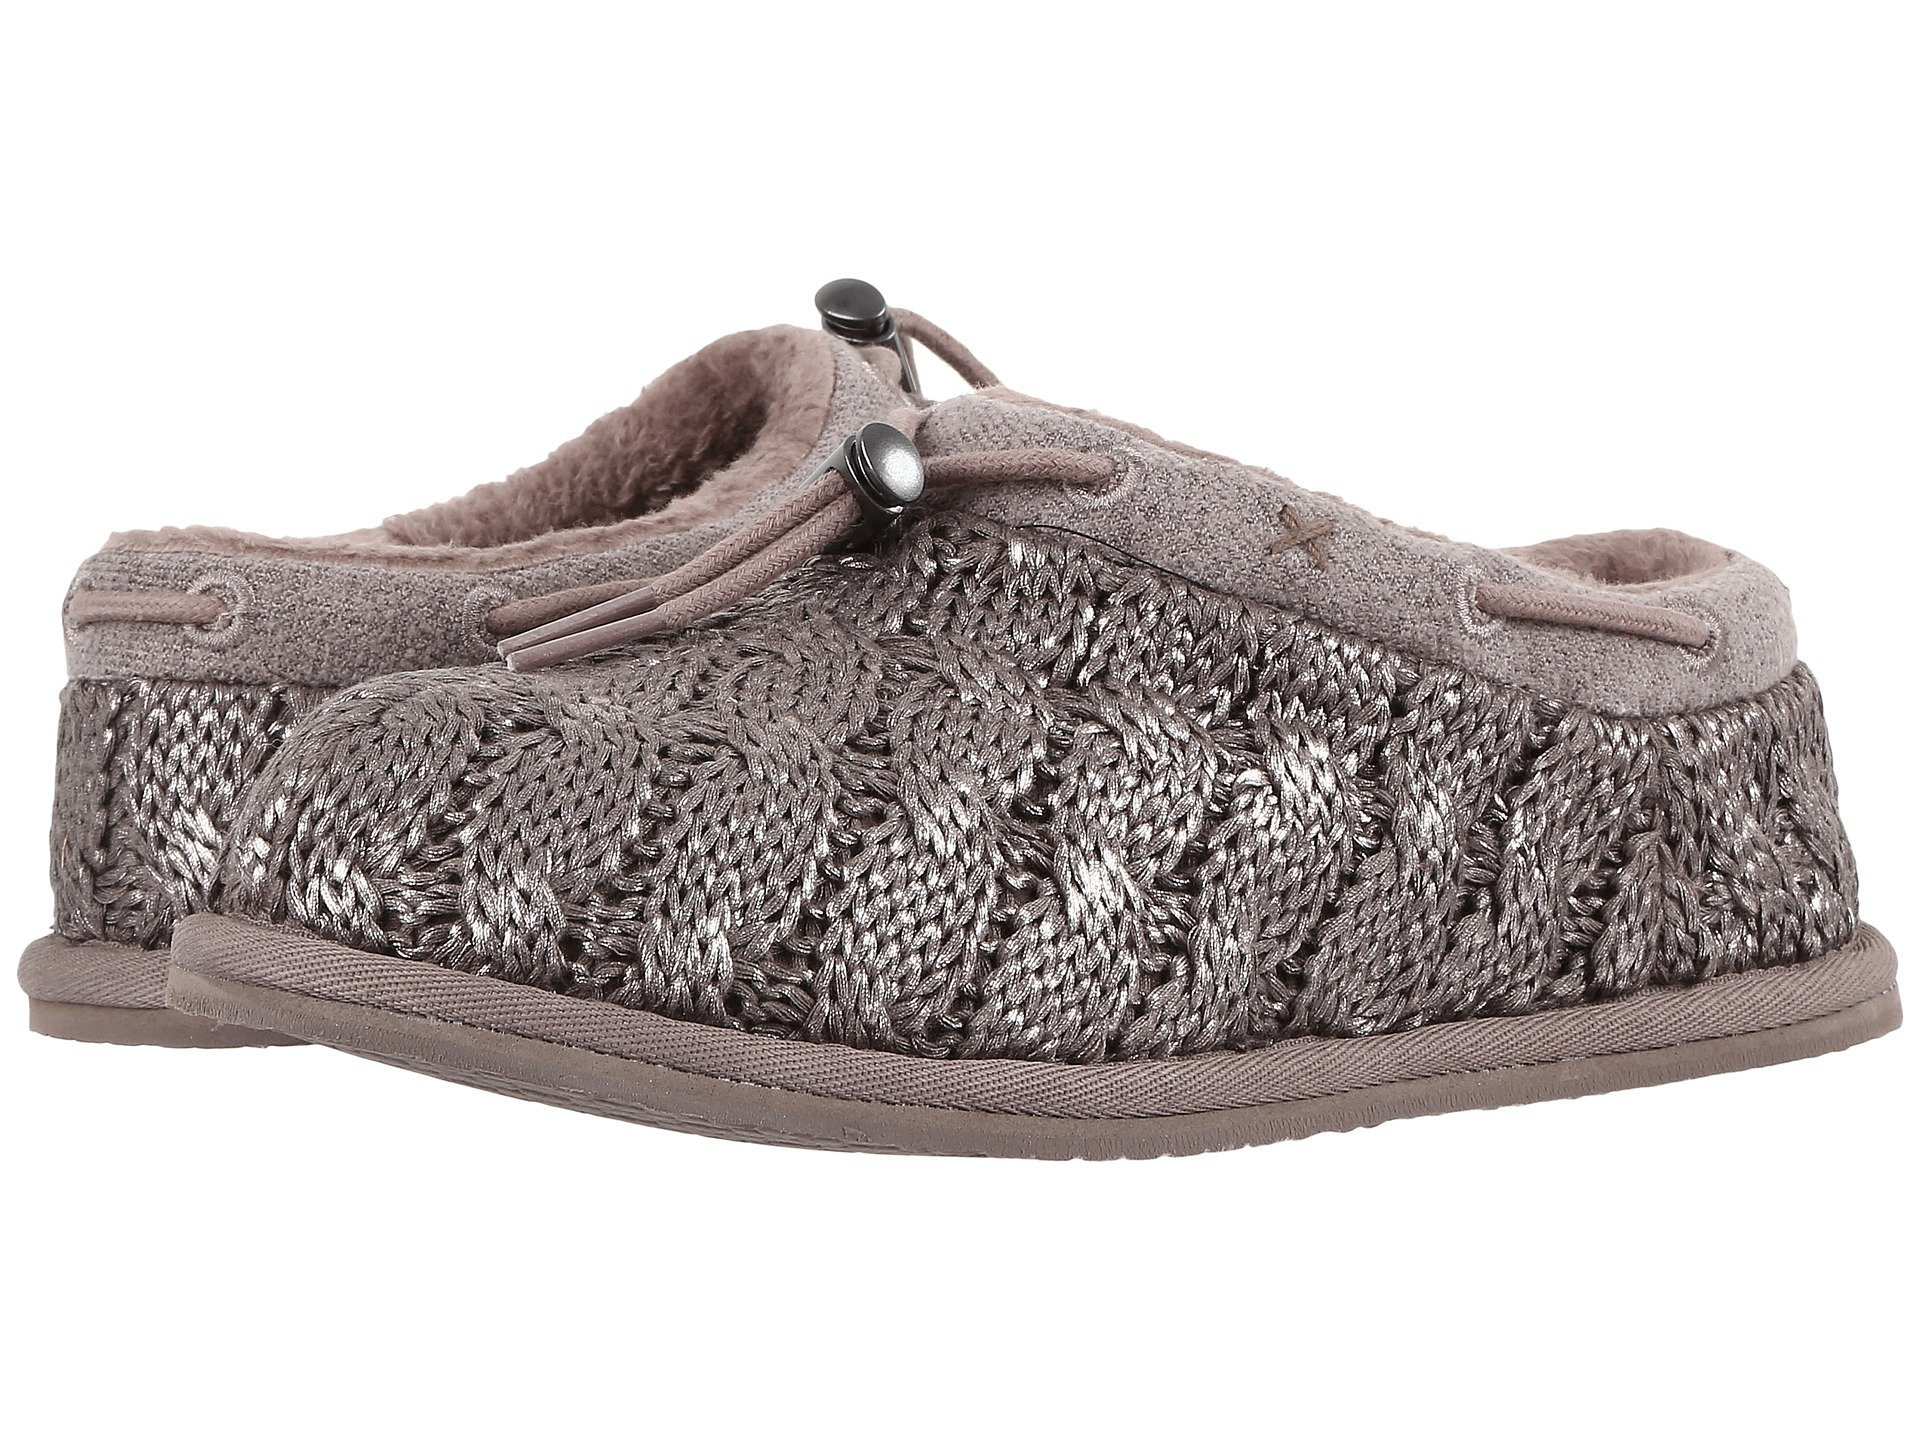 Ugg Kids Freesia Cable Knit Little Kid Big Kid At Zappos Com